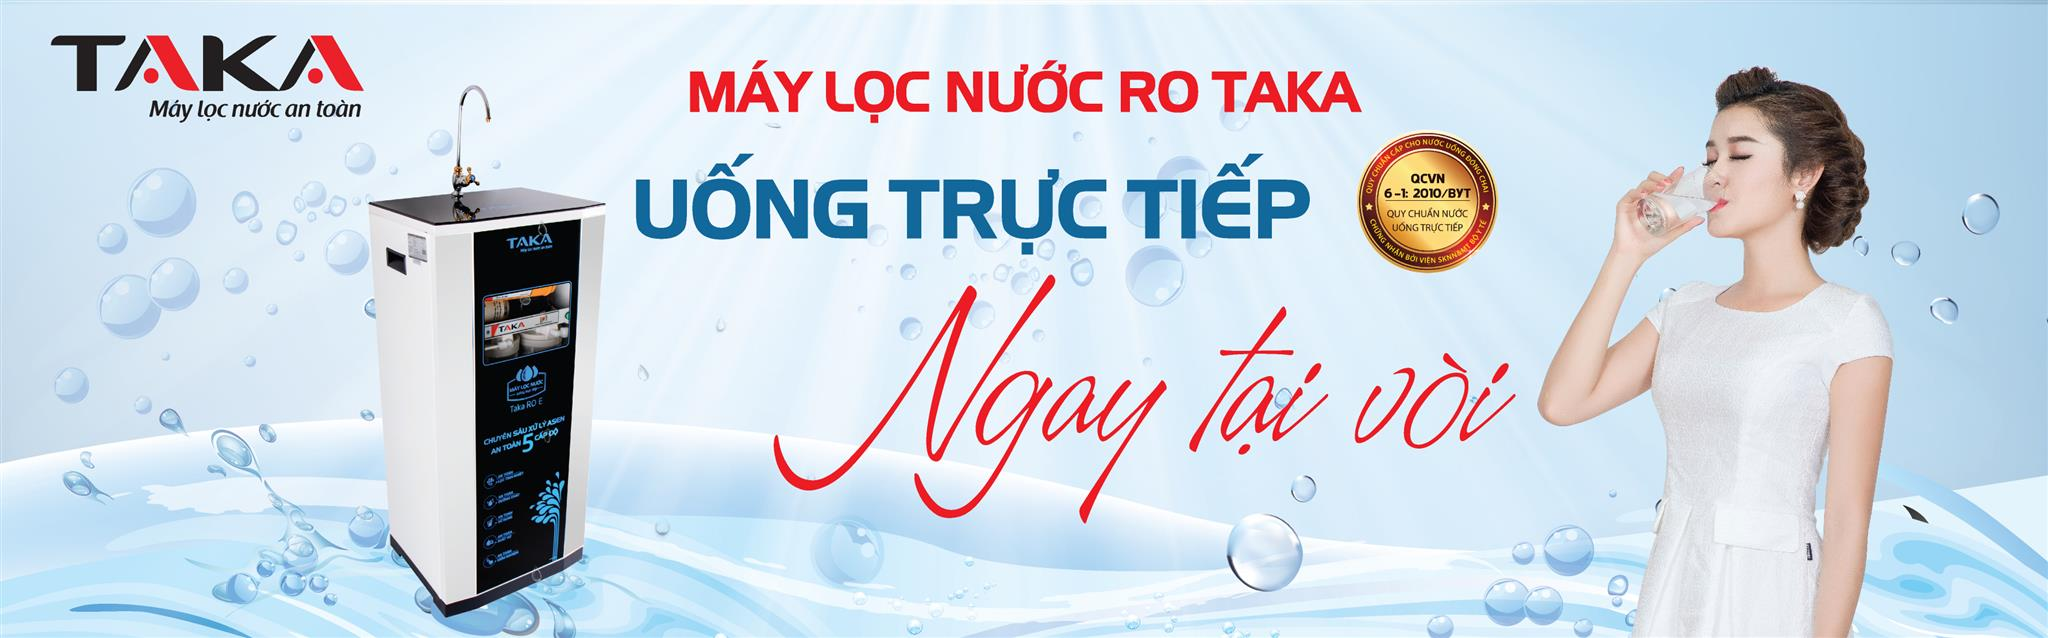 may-loc-nuoc-taka-banner-web